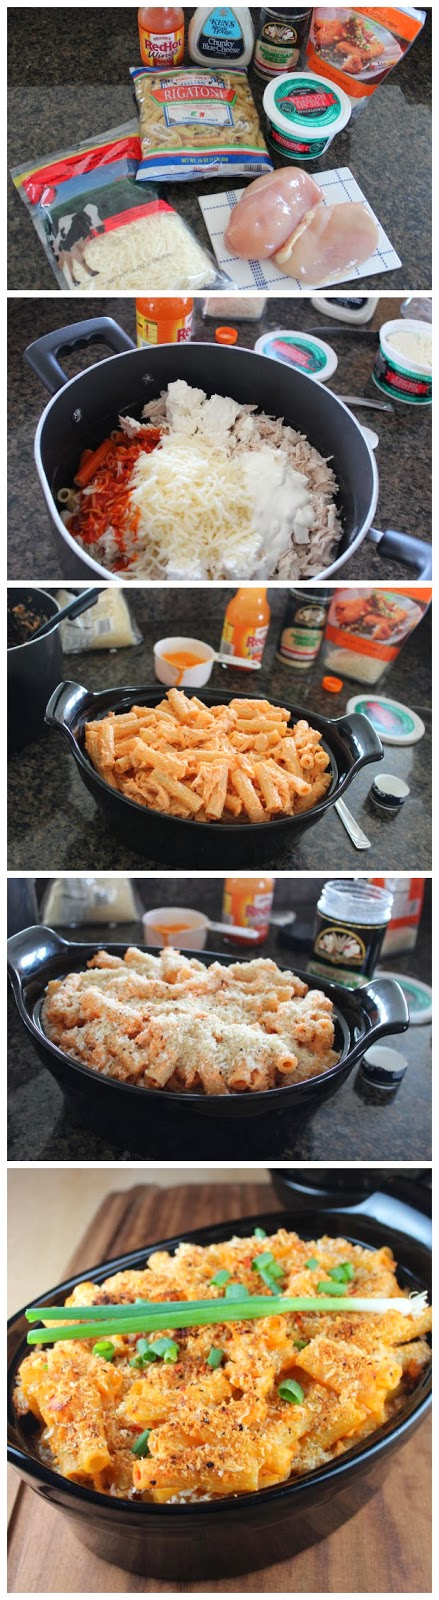 Buffalo-Chicken-Baked-Pasta